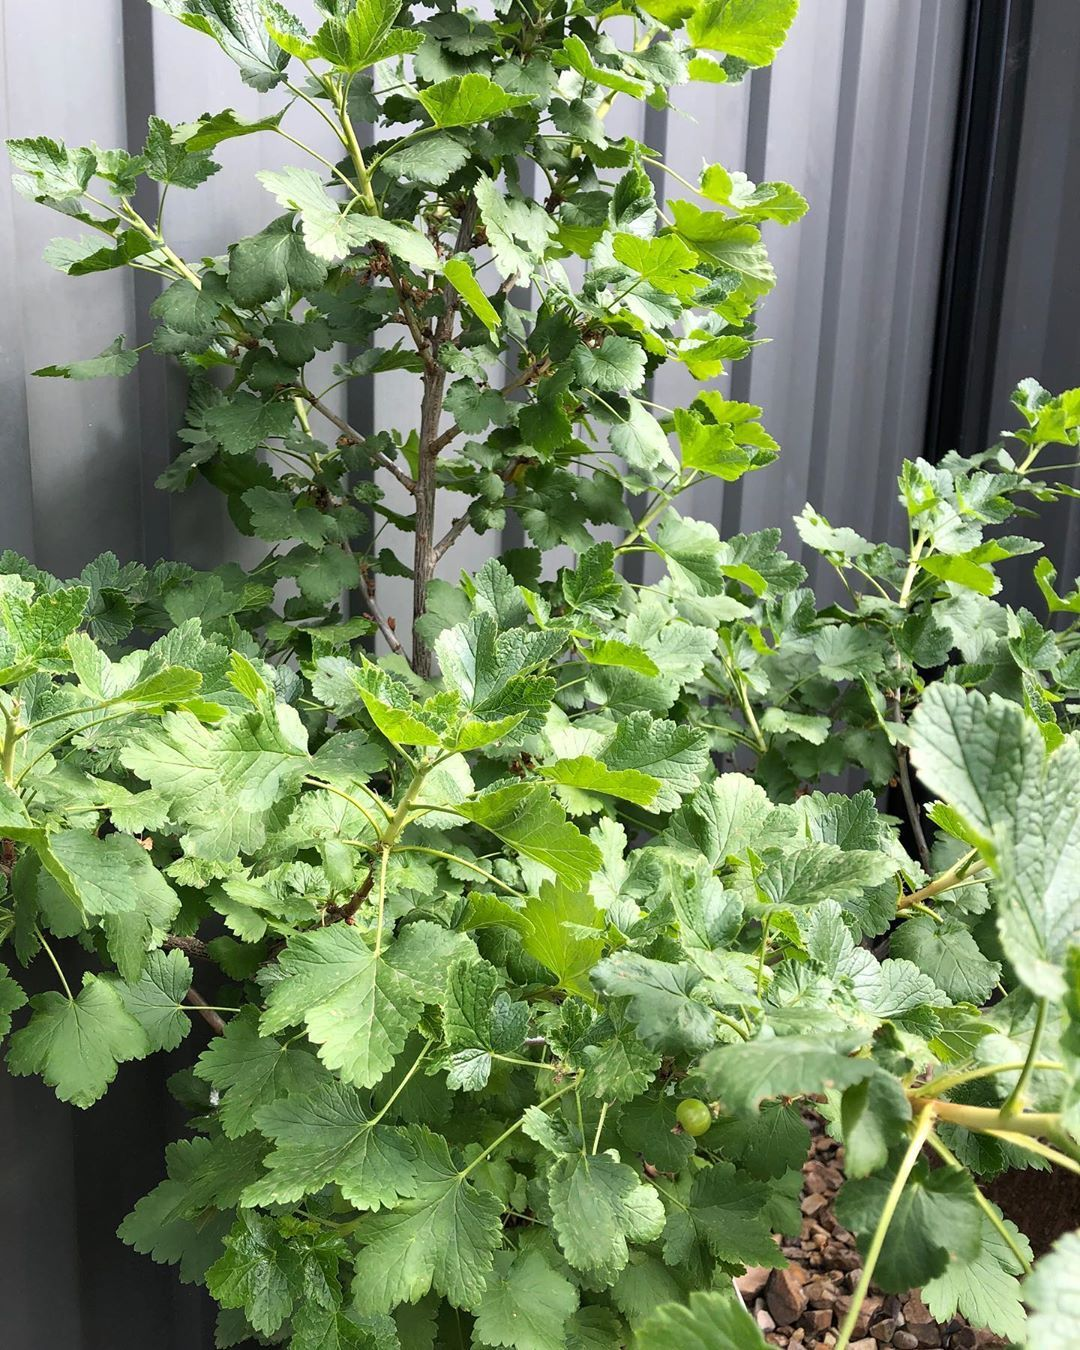 See if you can spot the Jostaberry. It literally only grew one berry   #SmallSpa... #containergardening #gardening #gardeningaustralia #Jostaberry #MelbourneGarden #organicgardening #plants